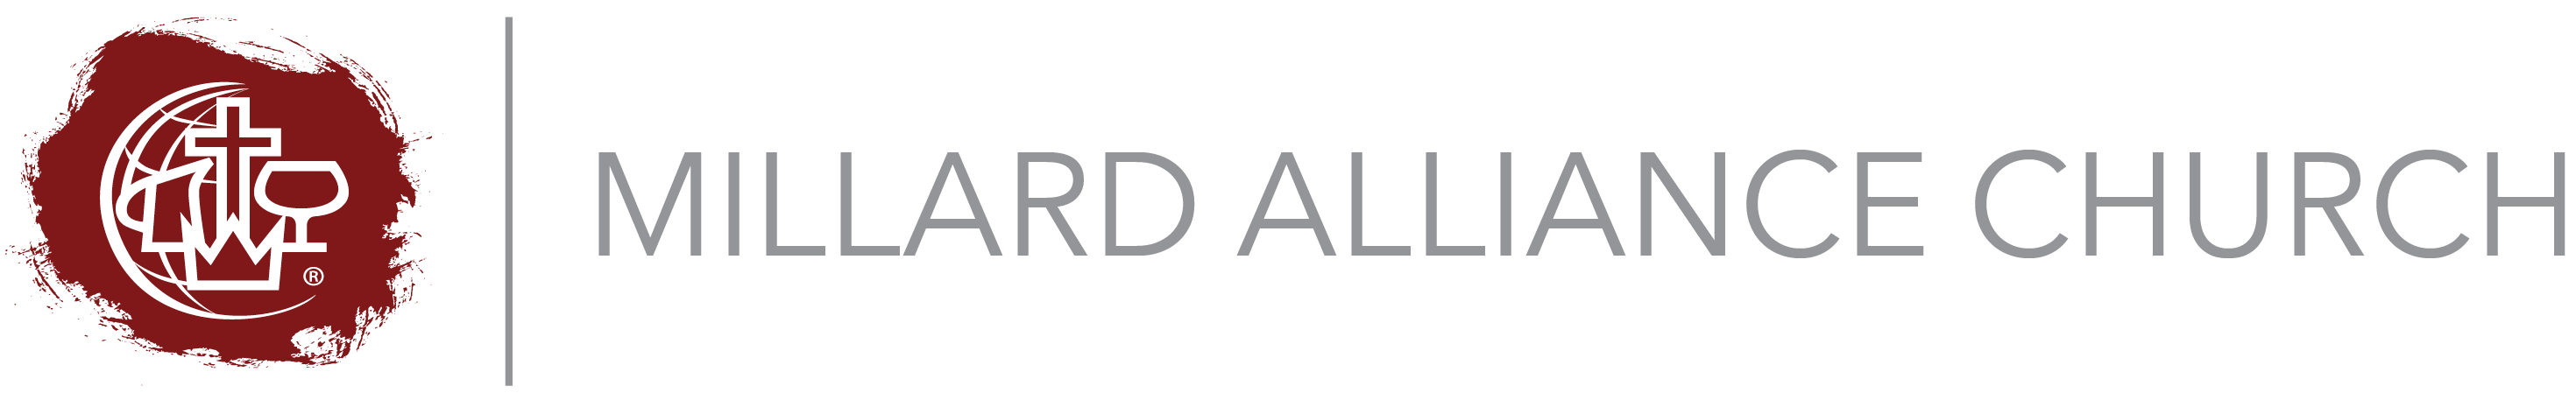 Millard Alliance Church